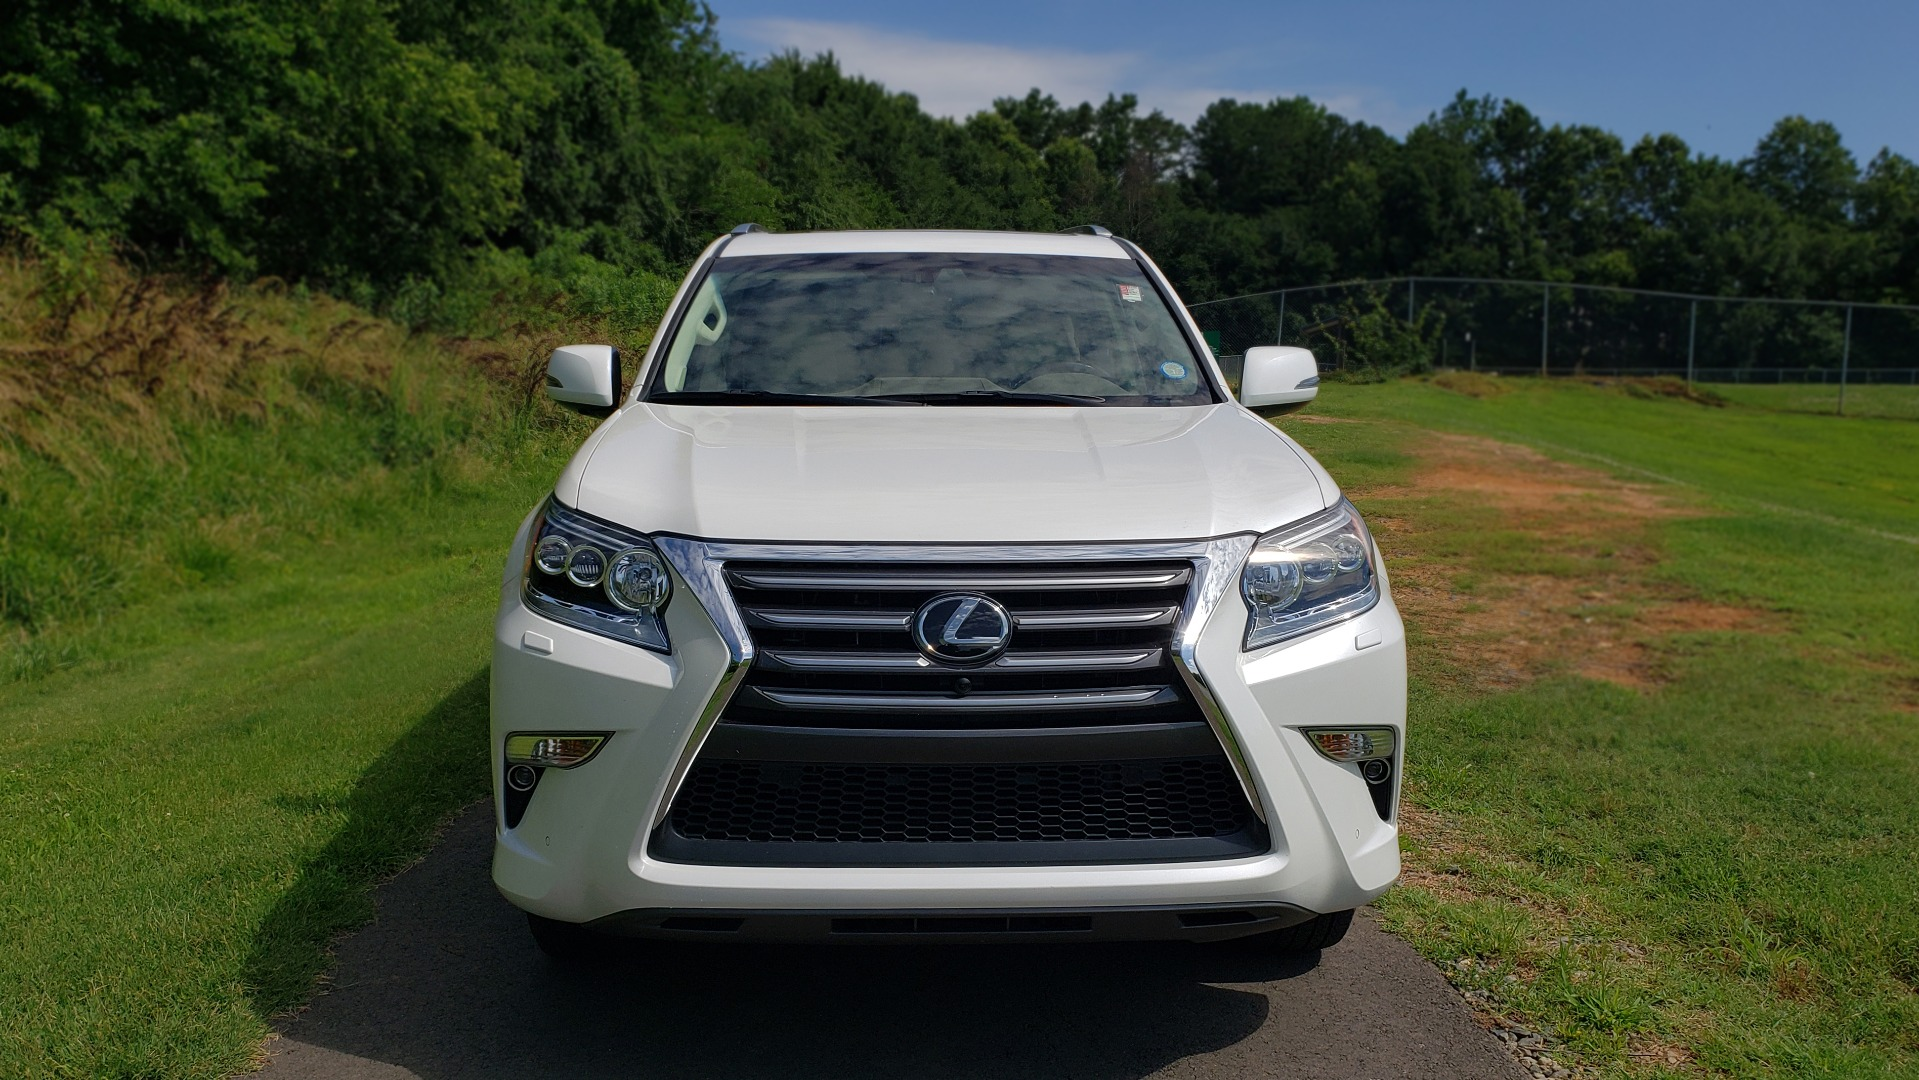 Used 2019 Lexus GX 460 LUXURY 4WD / DRVR SPRT PKG / MARK LEV SND / DYN CRUISE for sale Sold at Formula Imports in Charlotte NC 28227 9